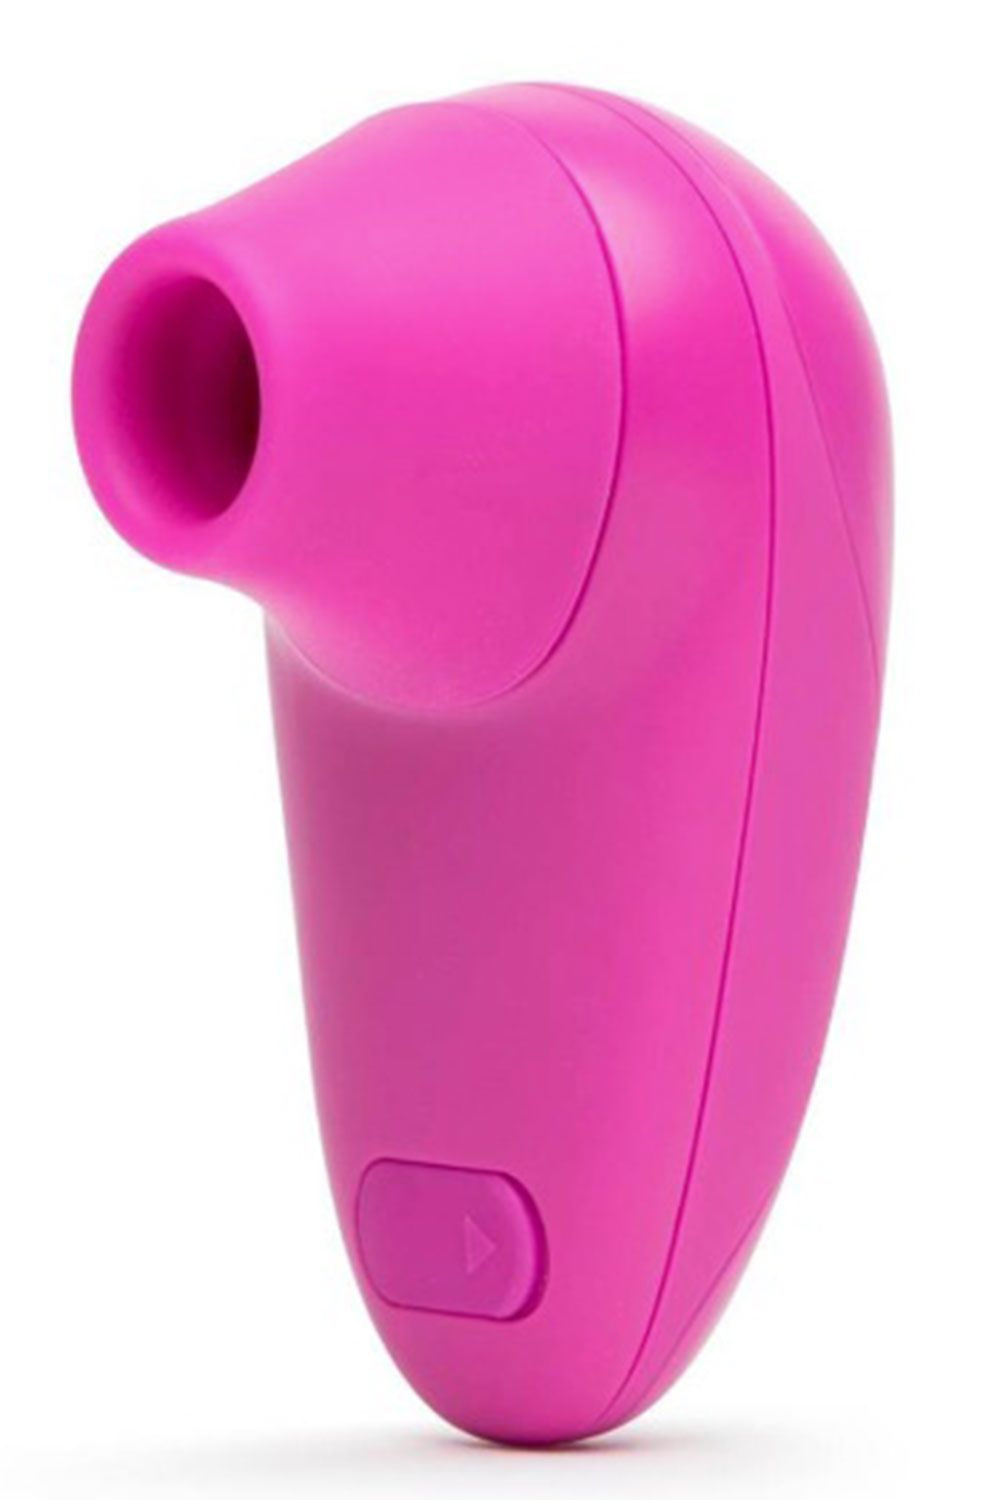 Oral sex toy for woman